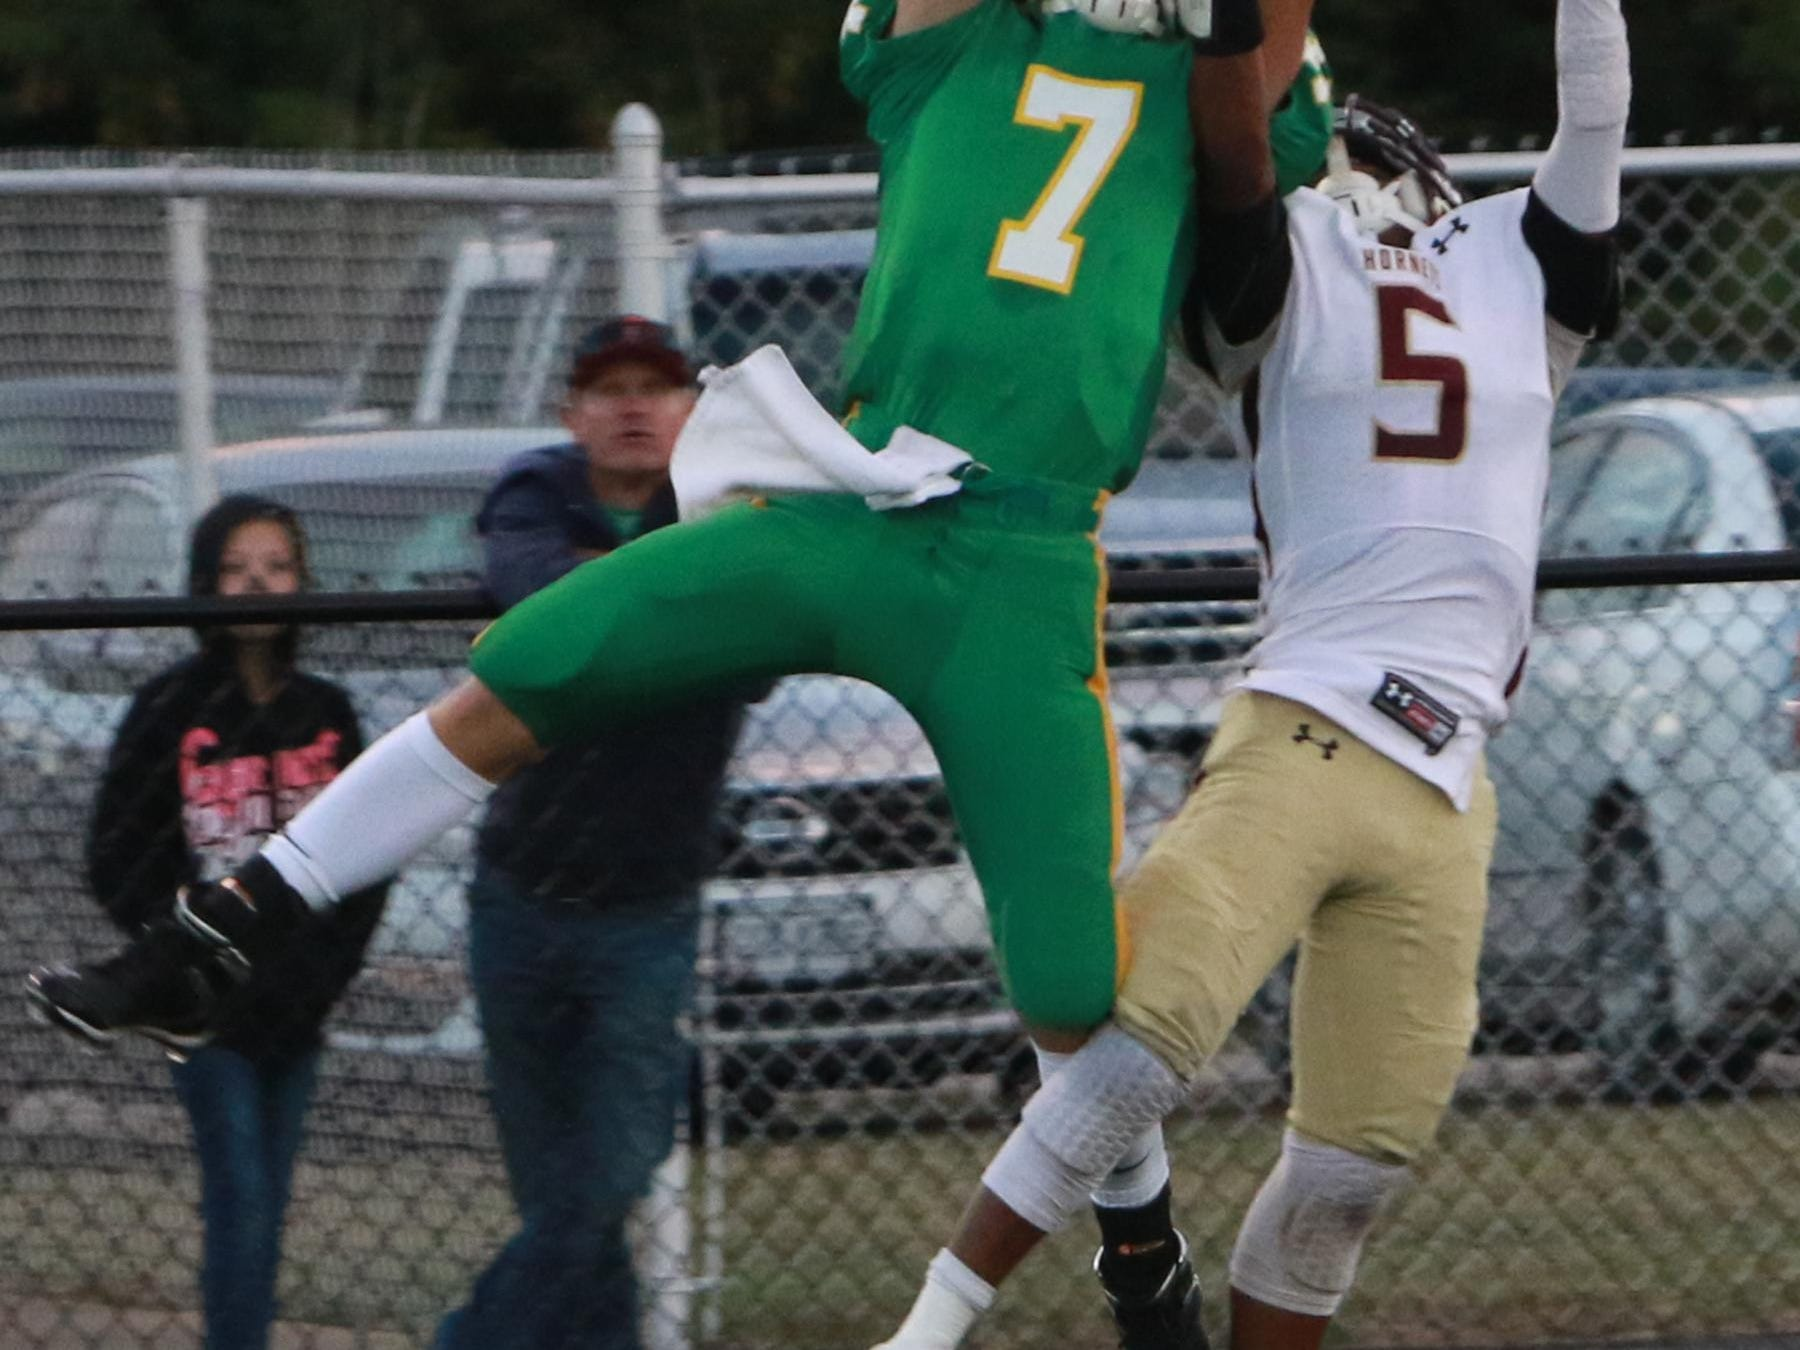 Newark Catholic junior Tanner Lake makes a leaping catch above Licking Heights' Keshawn Moore this past Saturday during the Hornets' 21-13 victory against the Green Wave.